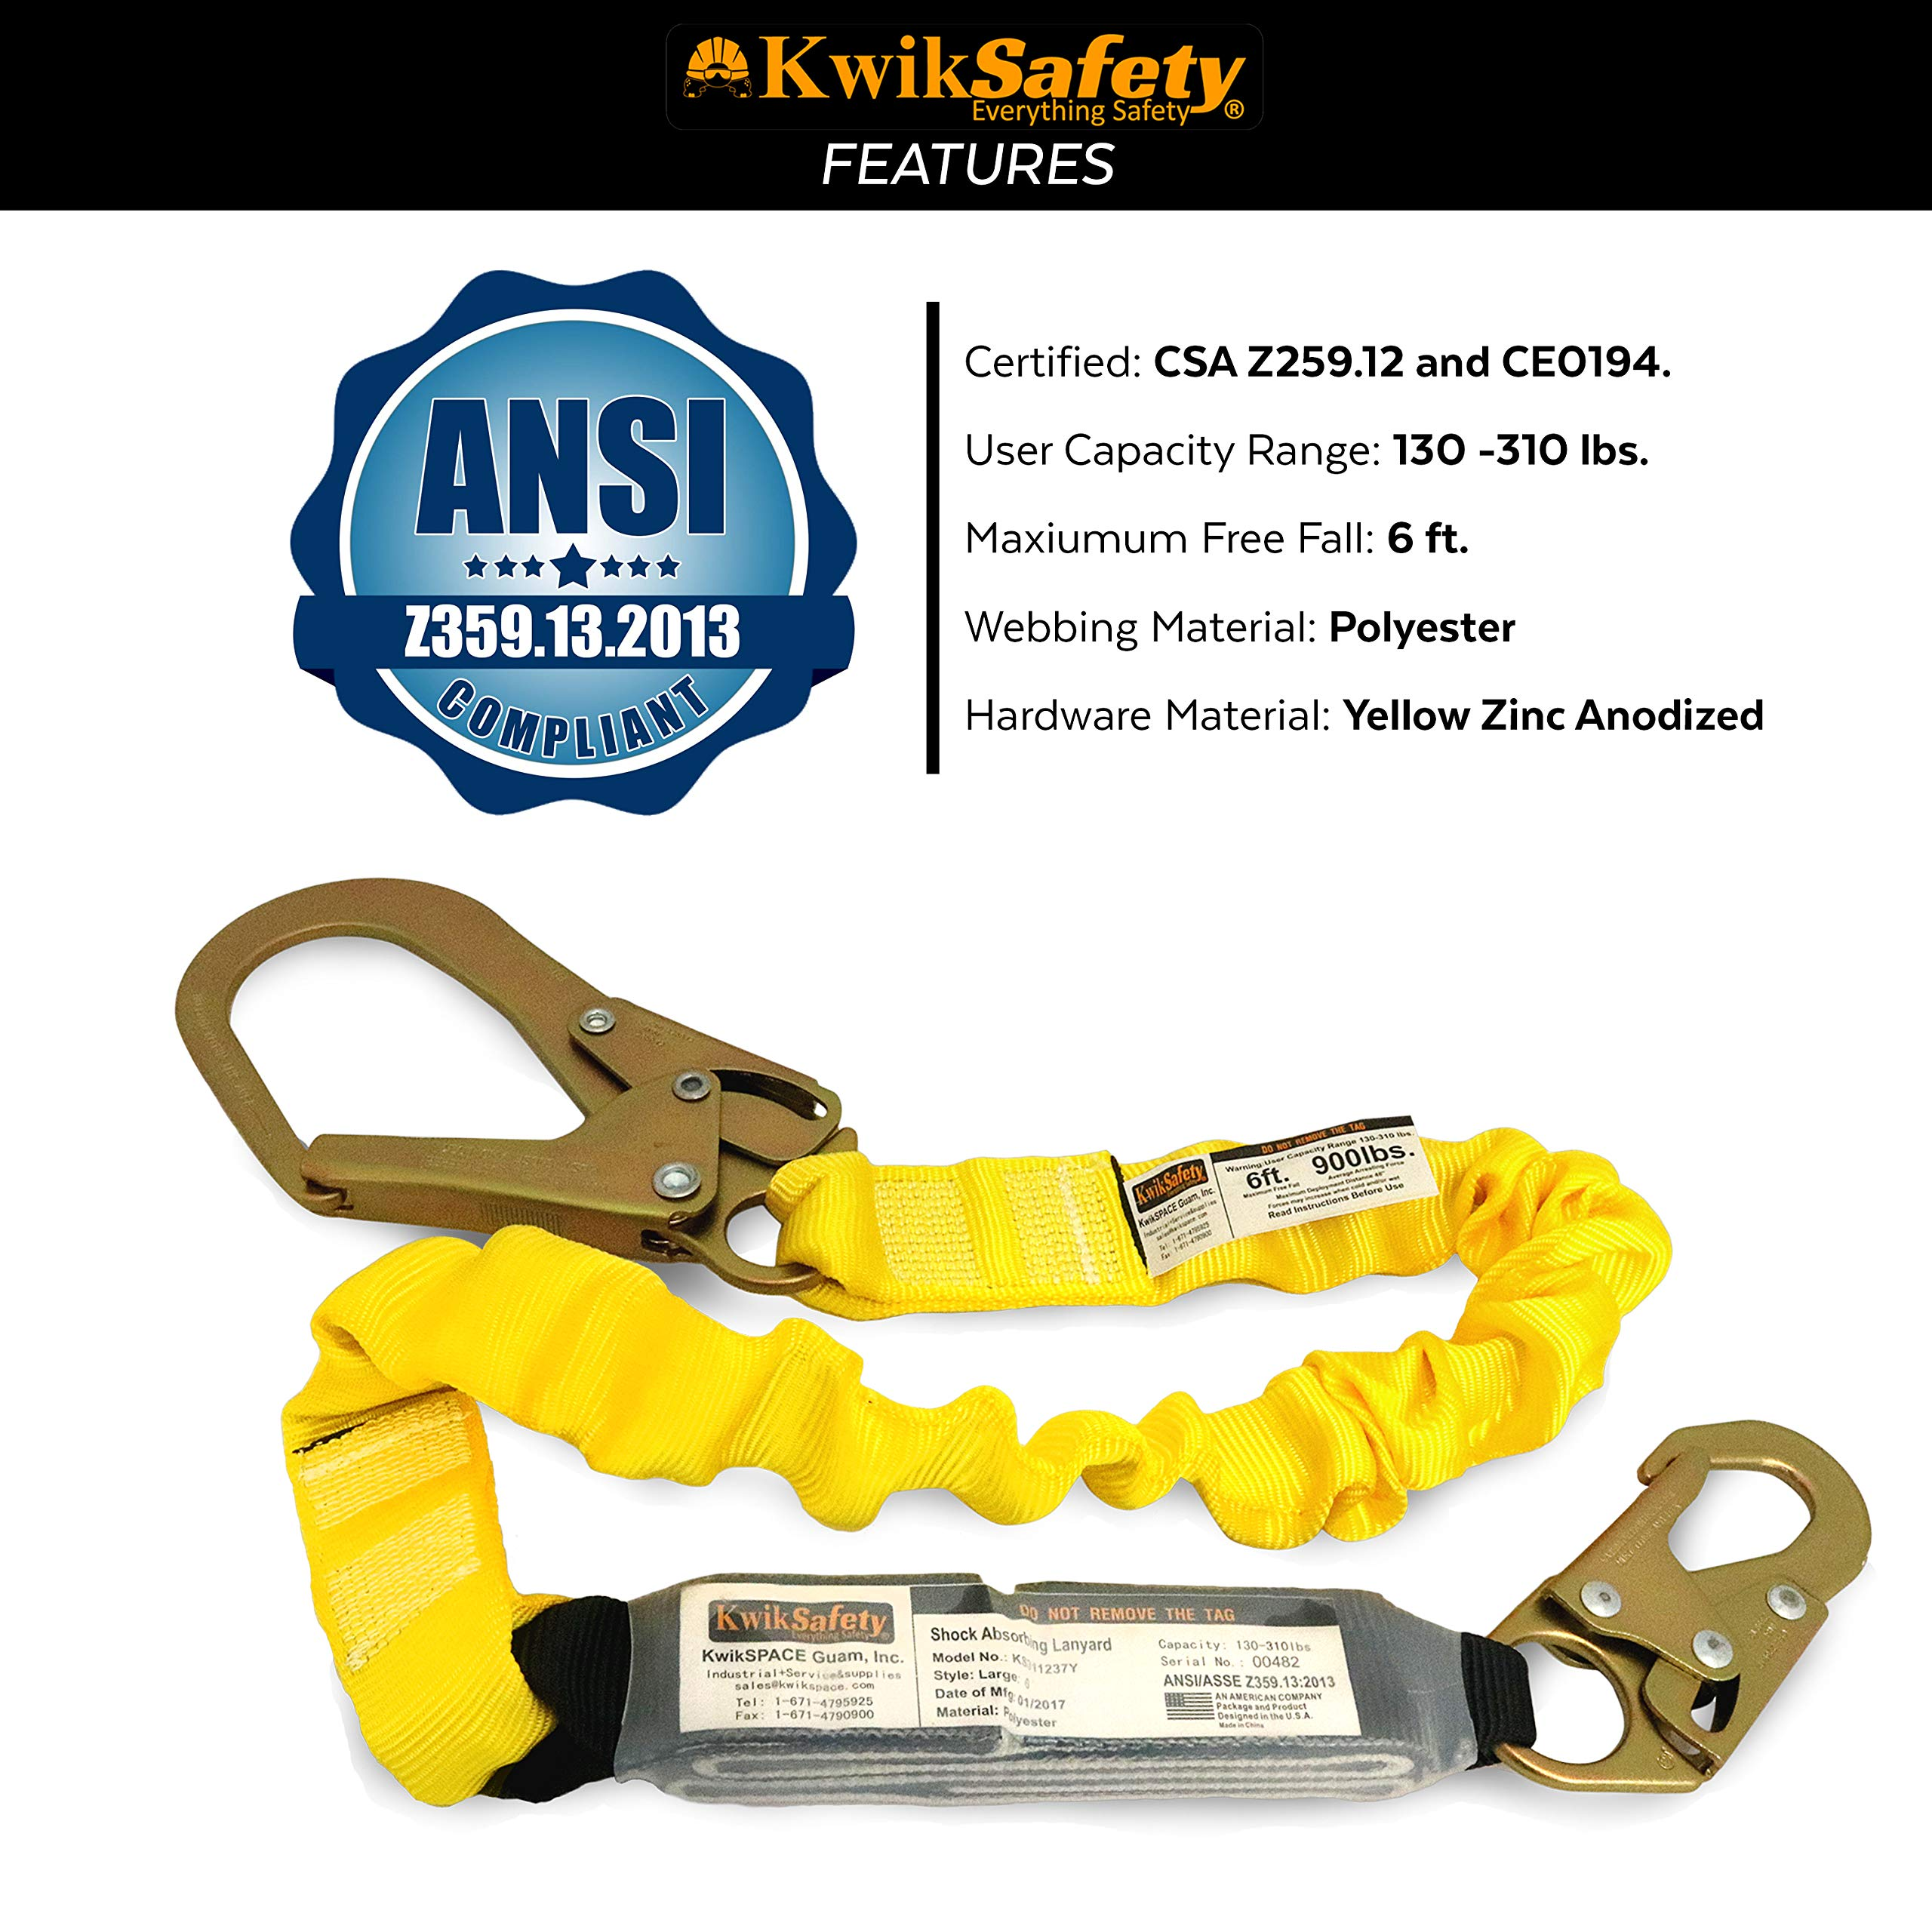 KwikSafety (Charlotte, NC) BOA 4 PACK (External Shock Absorber) Single Leg 6ft Safety Lanyard OSHA ANSI Fall Protection Restraint Equipment Snap Rebar Hook Connectors Construction Arborist Roofing by KwikSafety (Image #6)